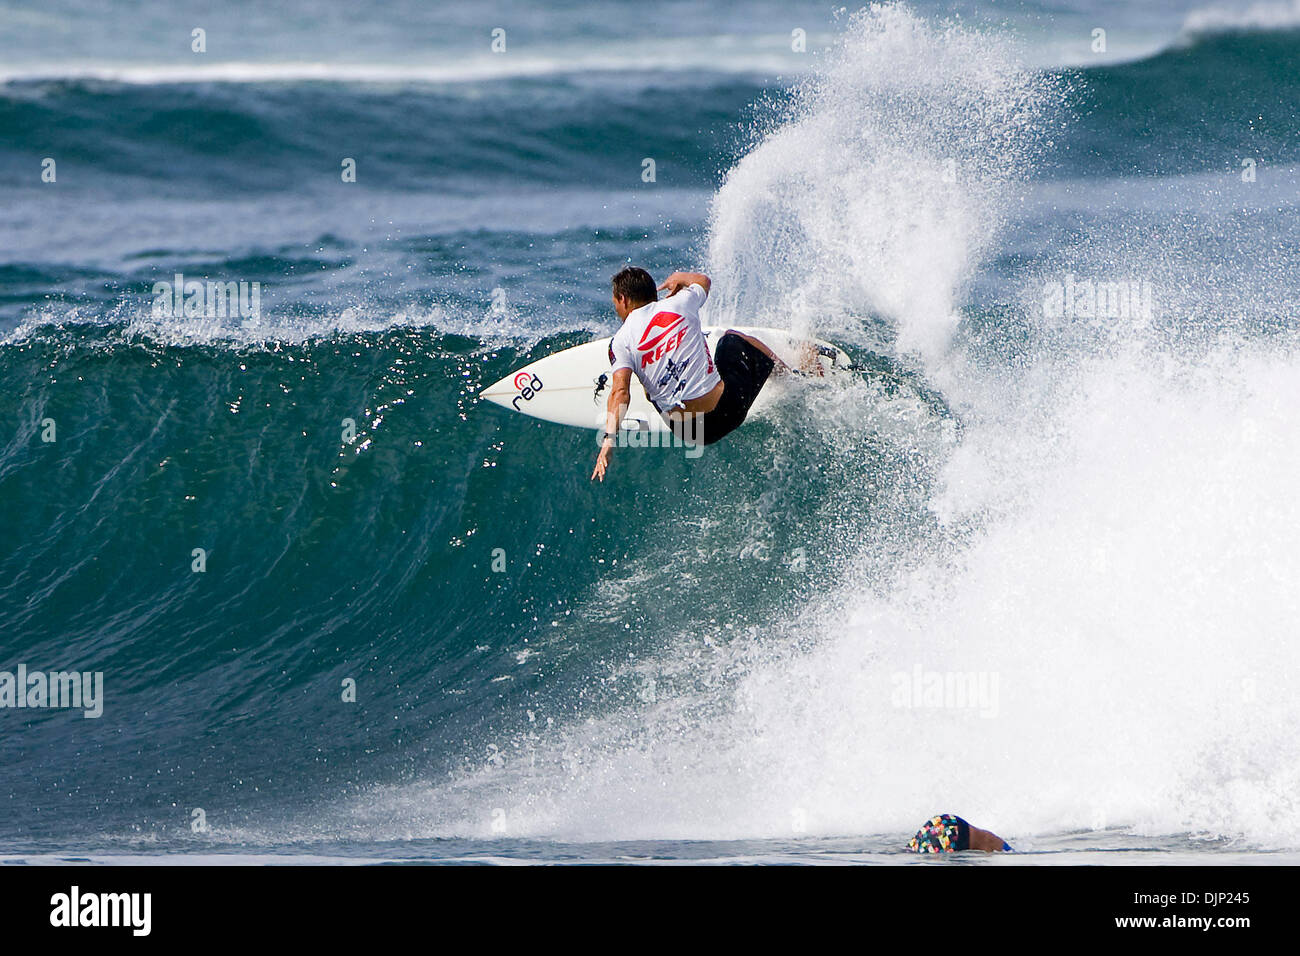 Nov 20, 2008 - Haleiwa, Hawaii, USA - GREG EMSLIE (East London, South Africa) won his heat in the round of 64 at the Reef Hawaiian Pro at Haleiwa Beach Park in Haleiwa. Emslie top two wave scores in were a 7.17 and a 7.33 (out of a possible 10) totalling a heat score of 14.50. Emslie defeated Pancho Sullivan (HAW), Flynn Novak (HAW) and Fredrick Patacchia (HAW). Emslie will advance - Stock Image